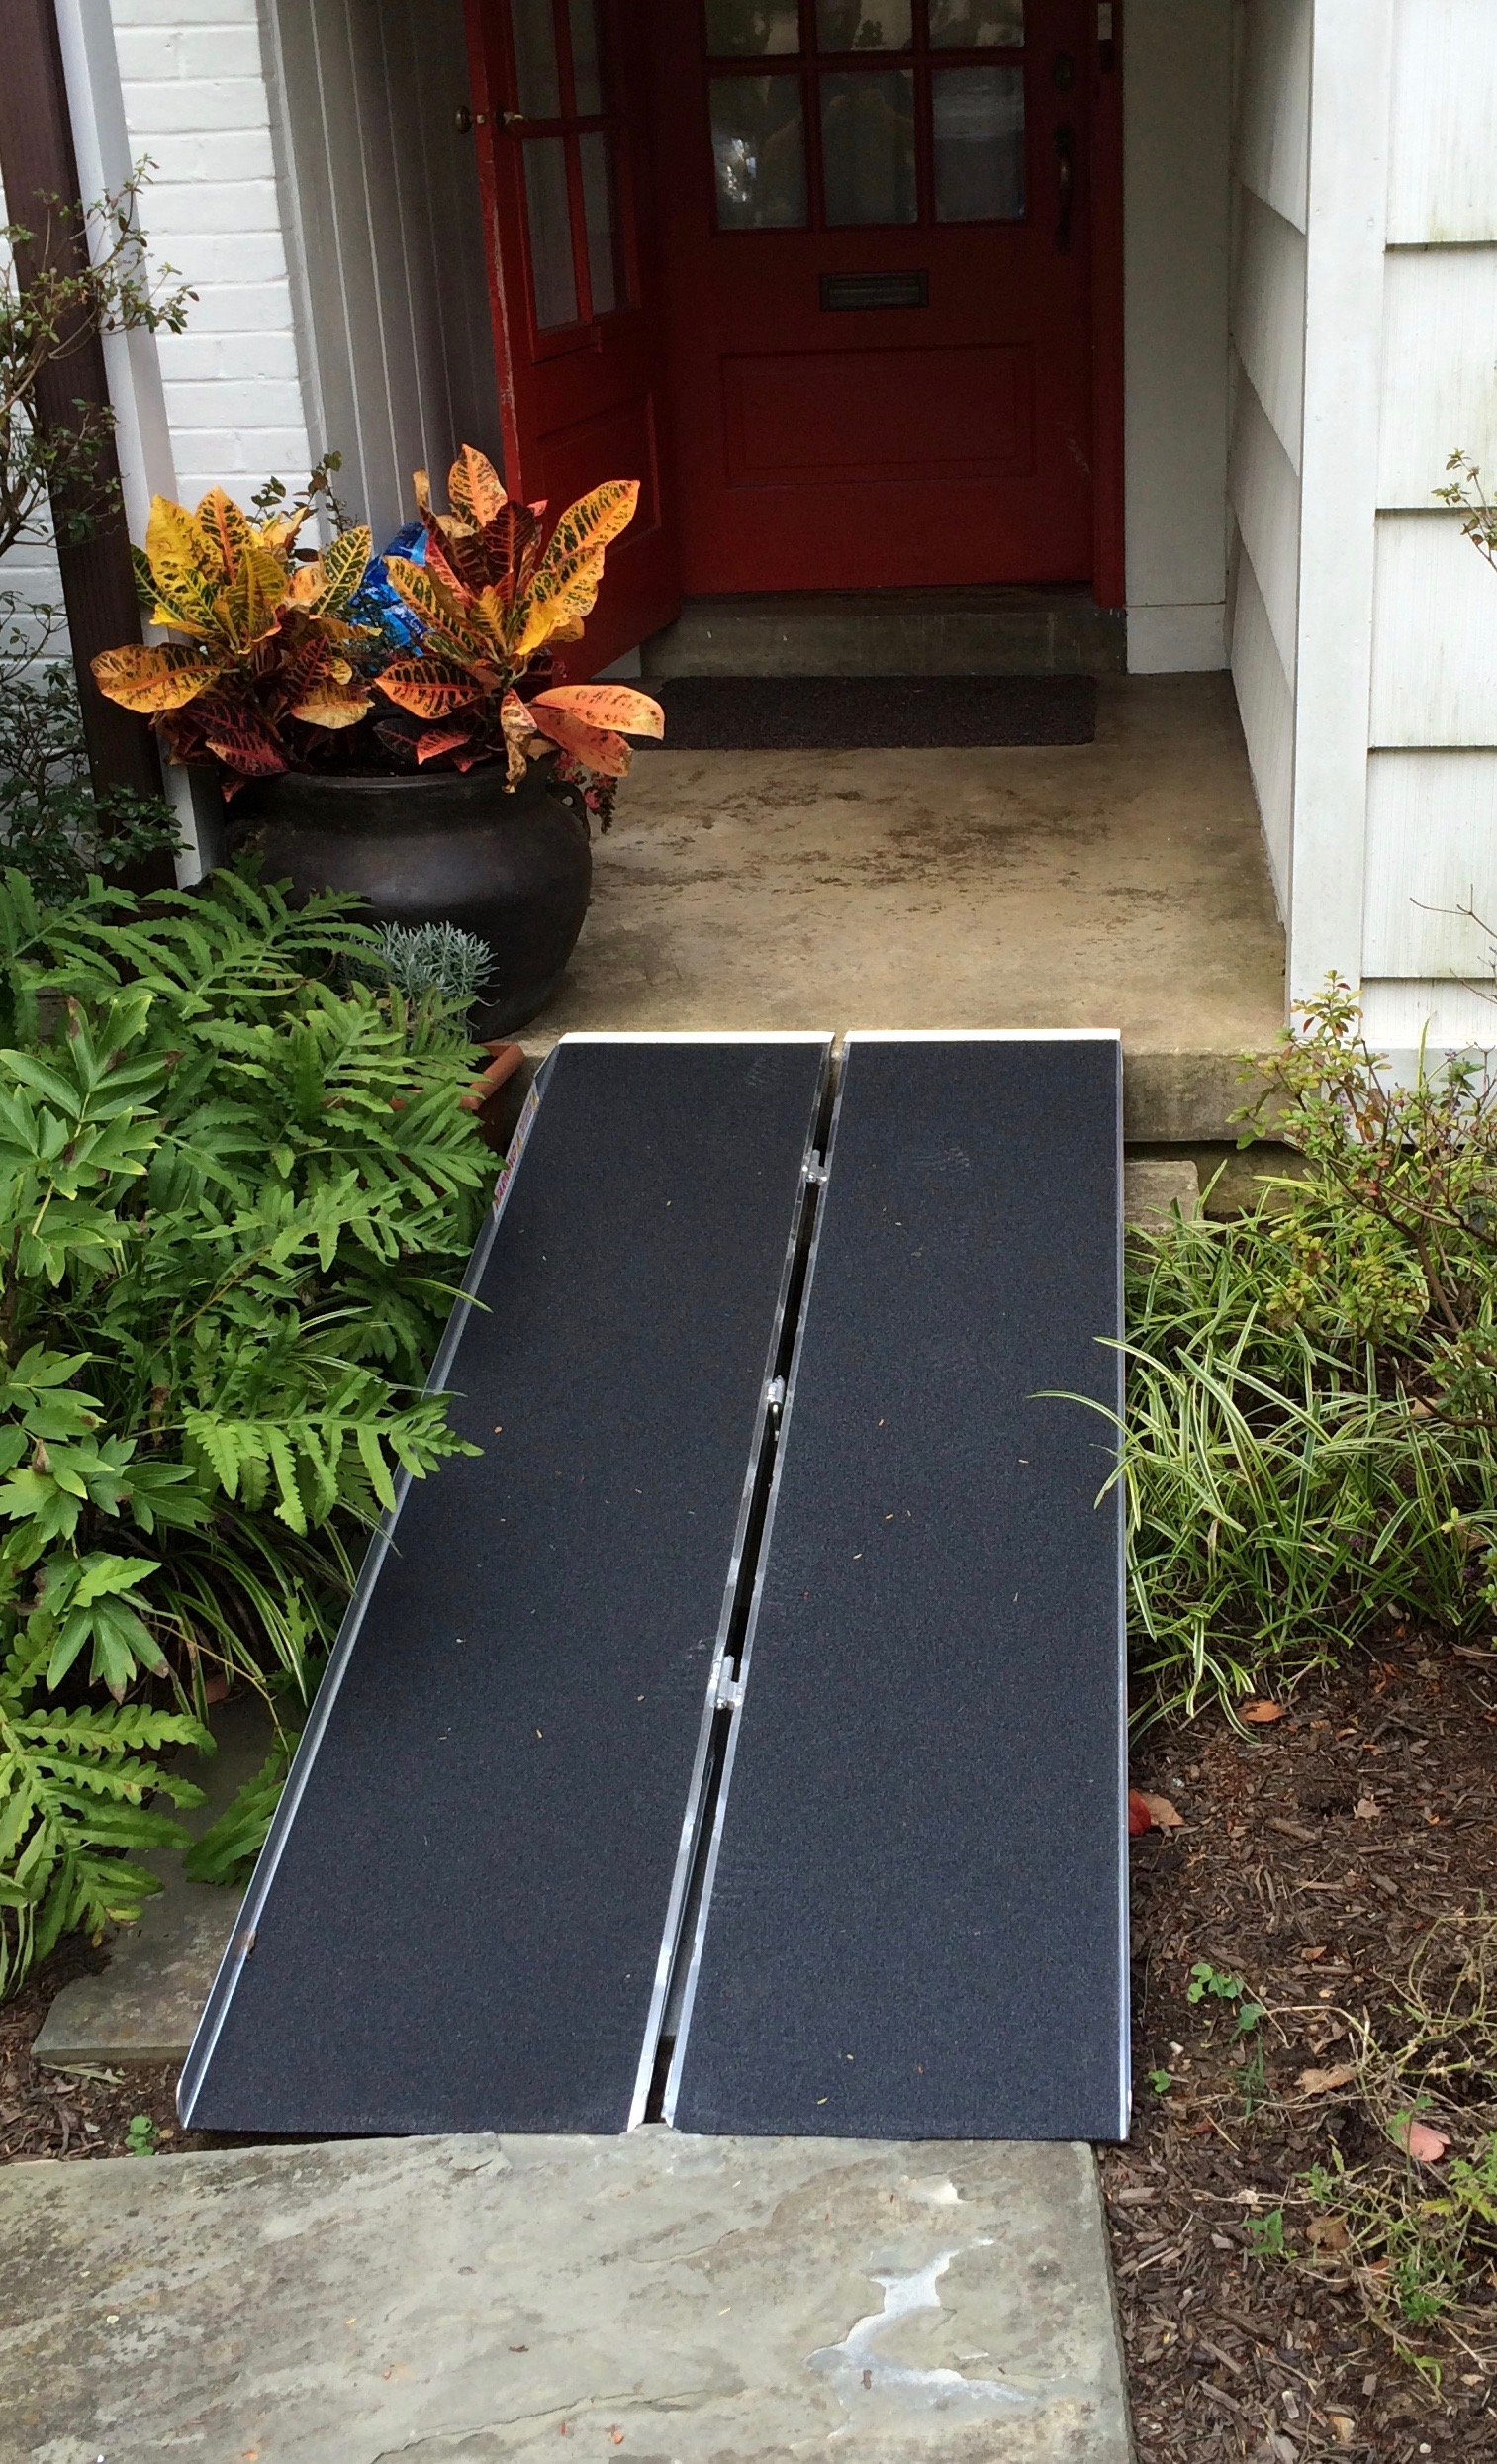 Wheelchair Accessible Entrance Modifications - Live in Place - Sterling, VA - wheelchair ramps - stair lift